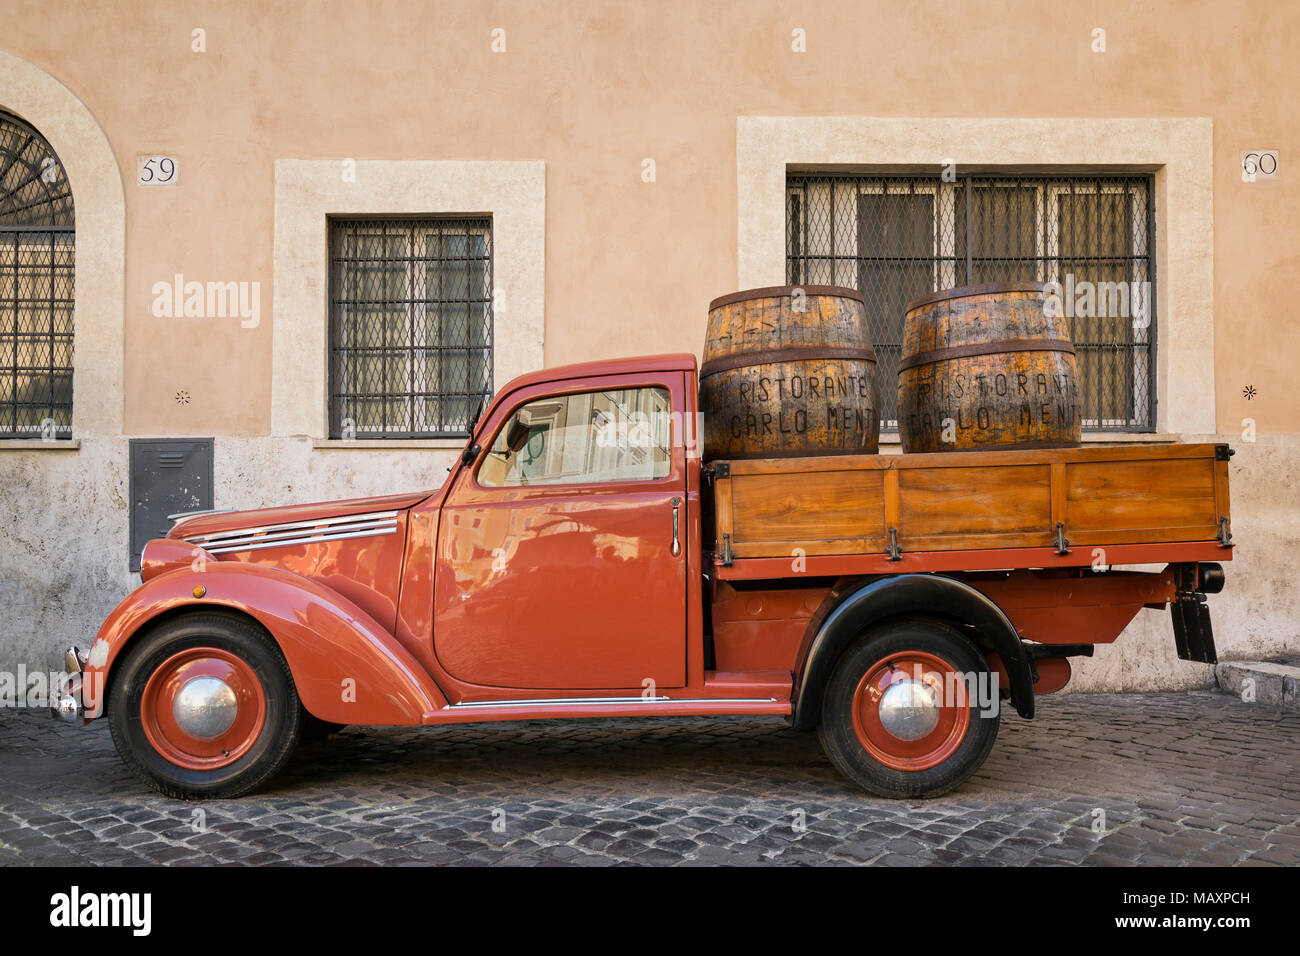 An old red Fiat 1100 flat bed van with wooden wine barrels in the back, parked outside Ristorante Carlo Menta in Rome, Italy. - Stock Image